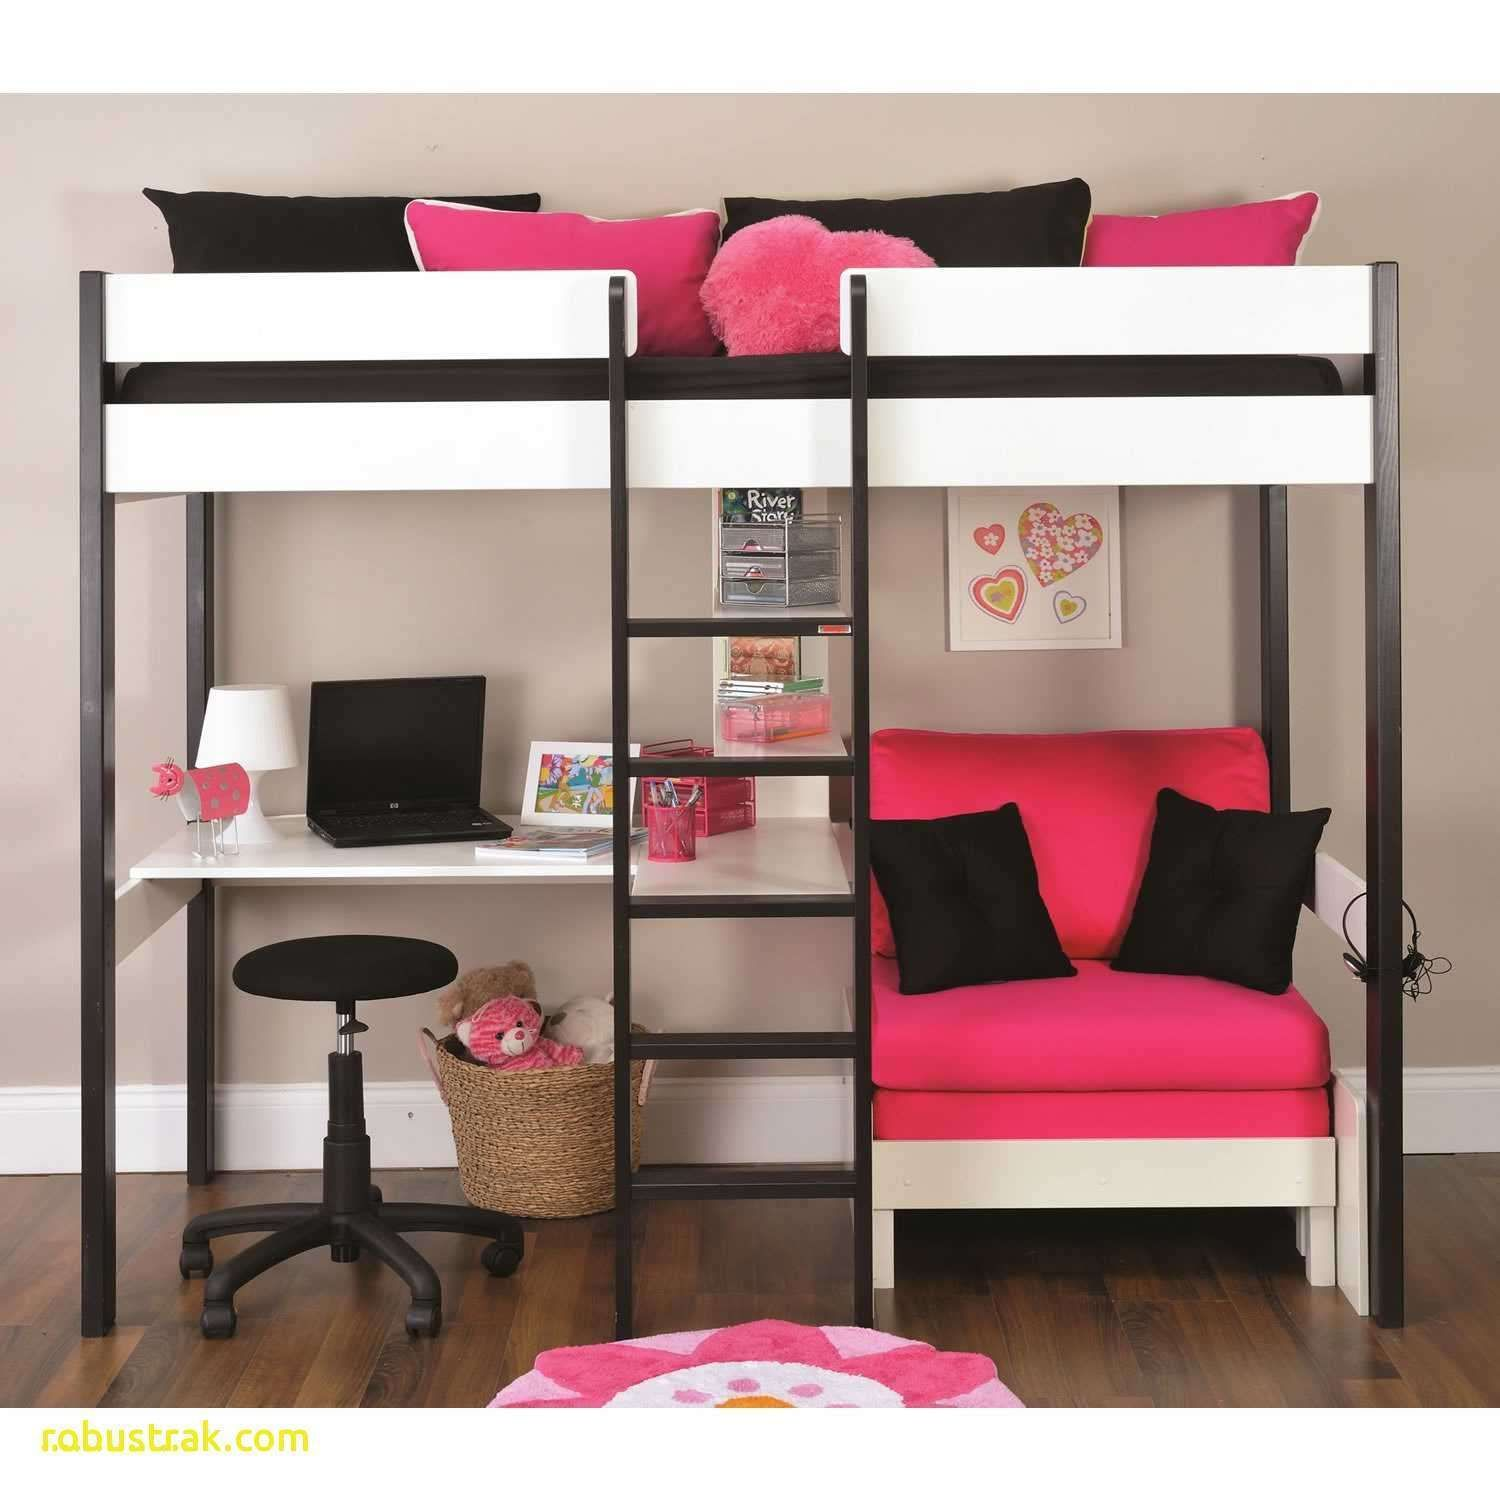 Diy Loft Bed with Desk Loft bed with couch, White loft